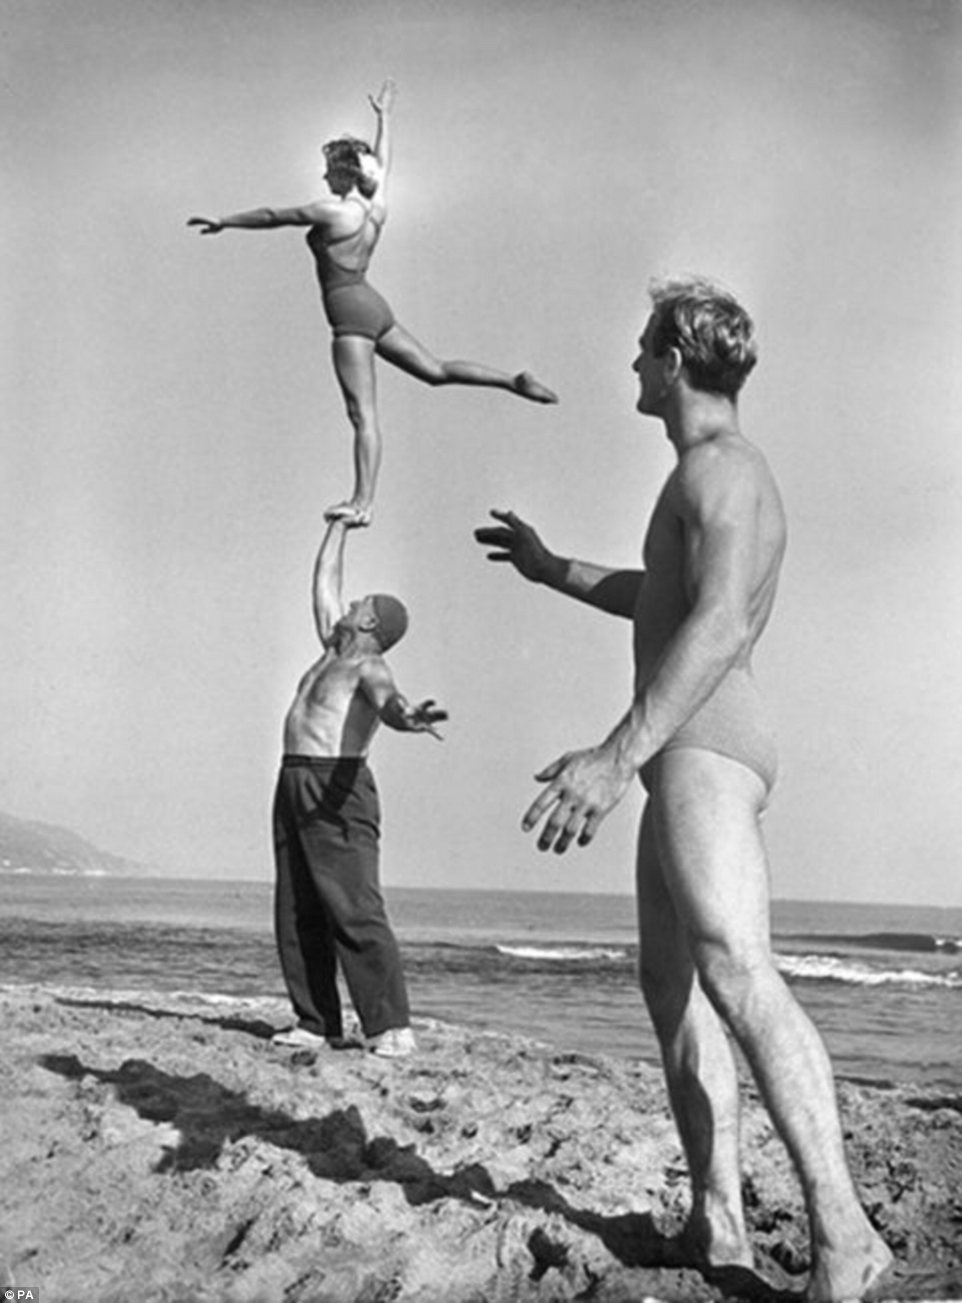 The images span three decades from the 1940s to 1960s, and include pictures of former U.S. president Harry Truman and James Bond star Roger Moore. This photograph shows a performers on Santa Monica beach